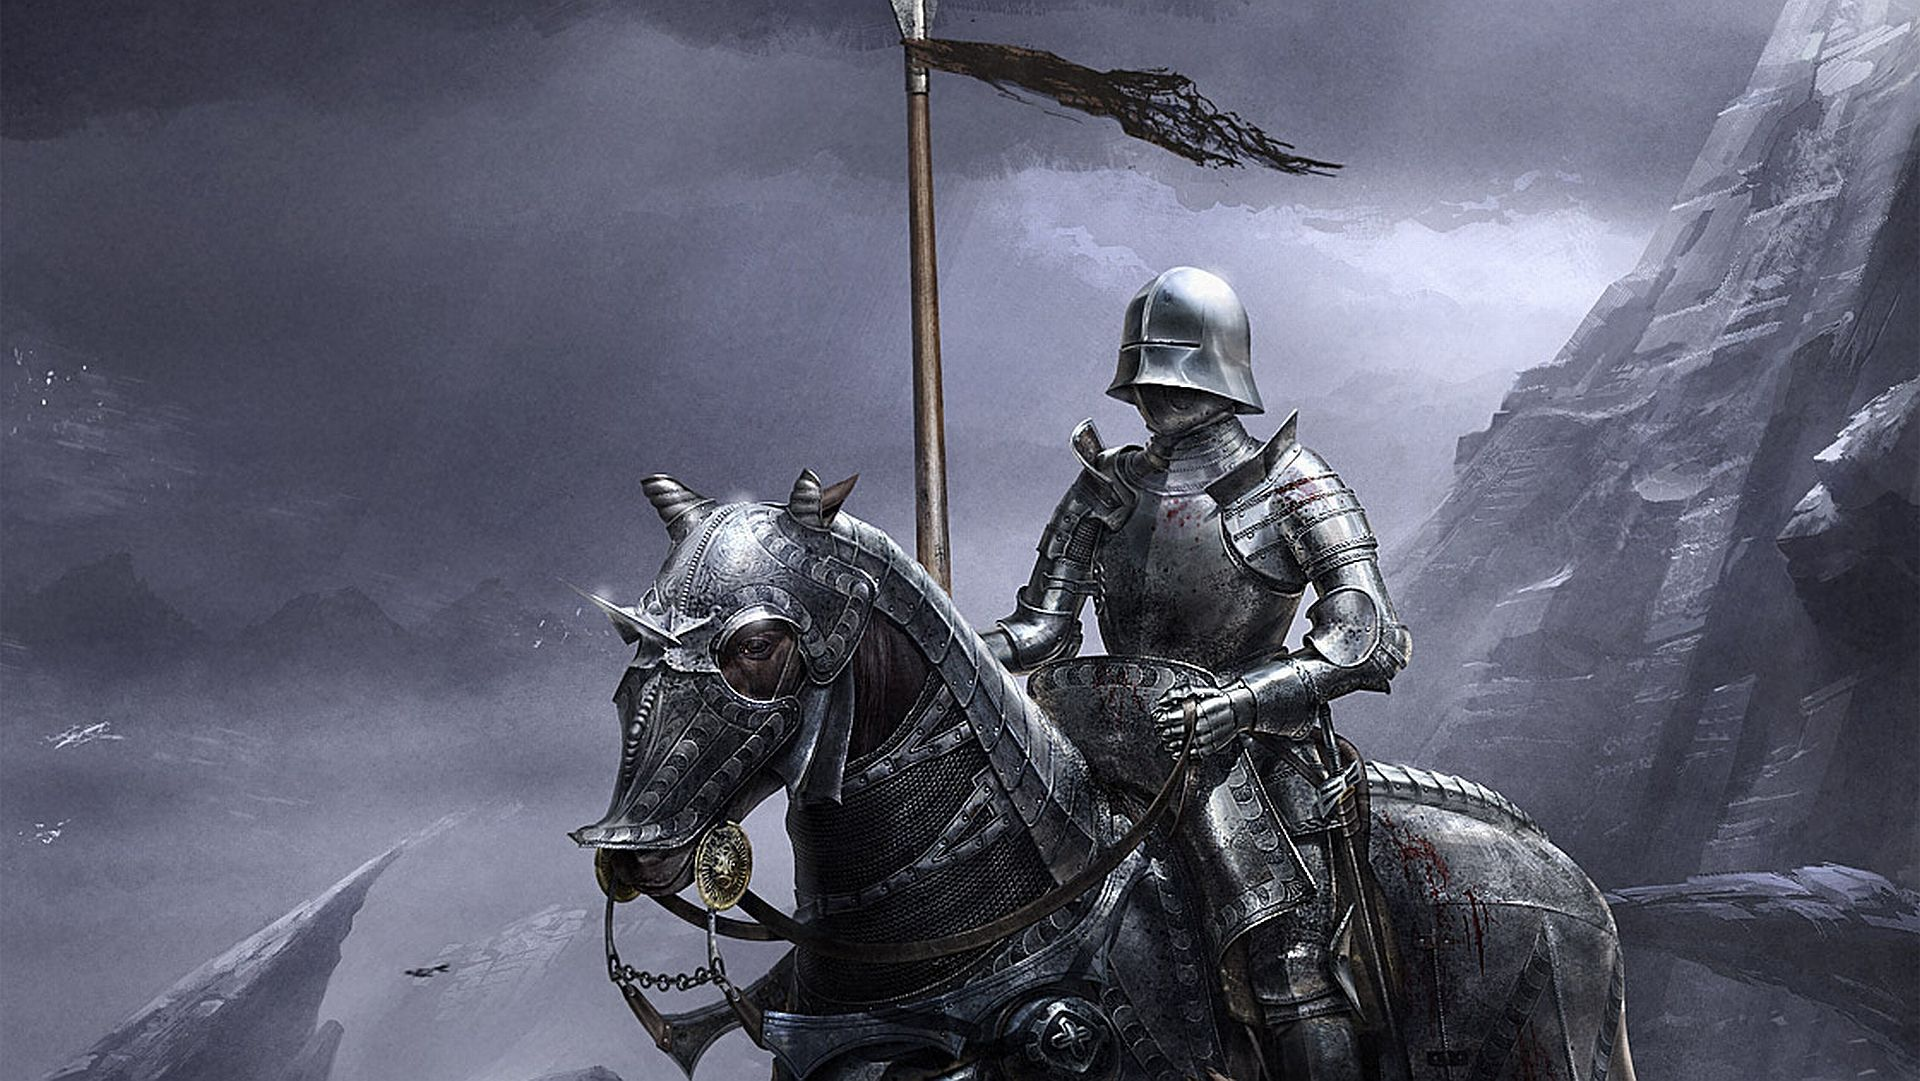 Medieval Knights Wallpapers Top Free Medieval Knights Backgrounds Wallpaperaccess